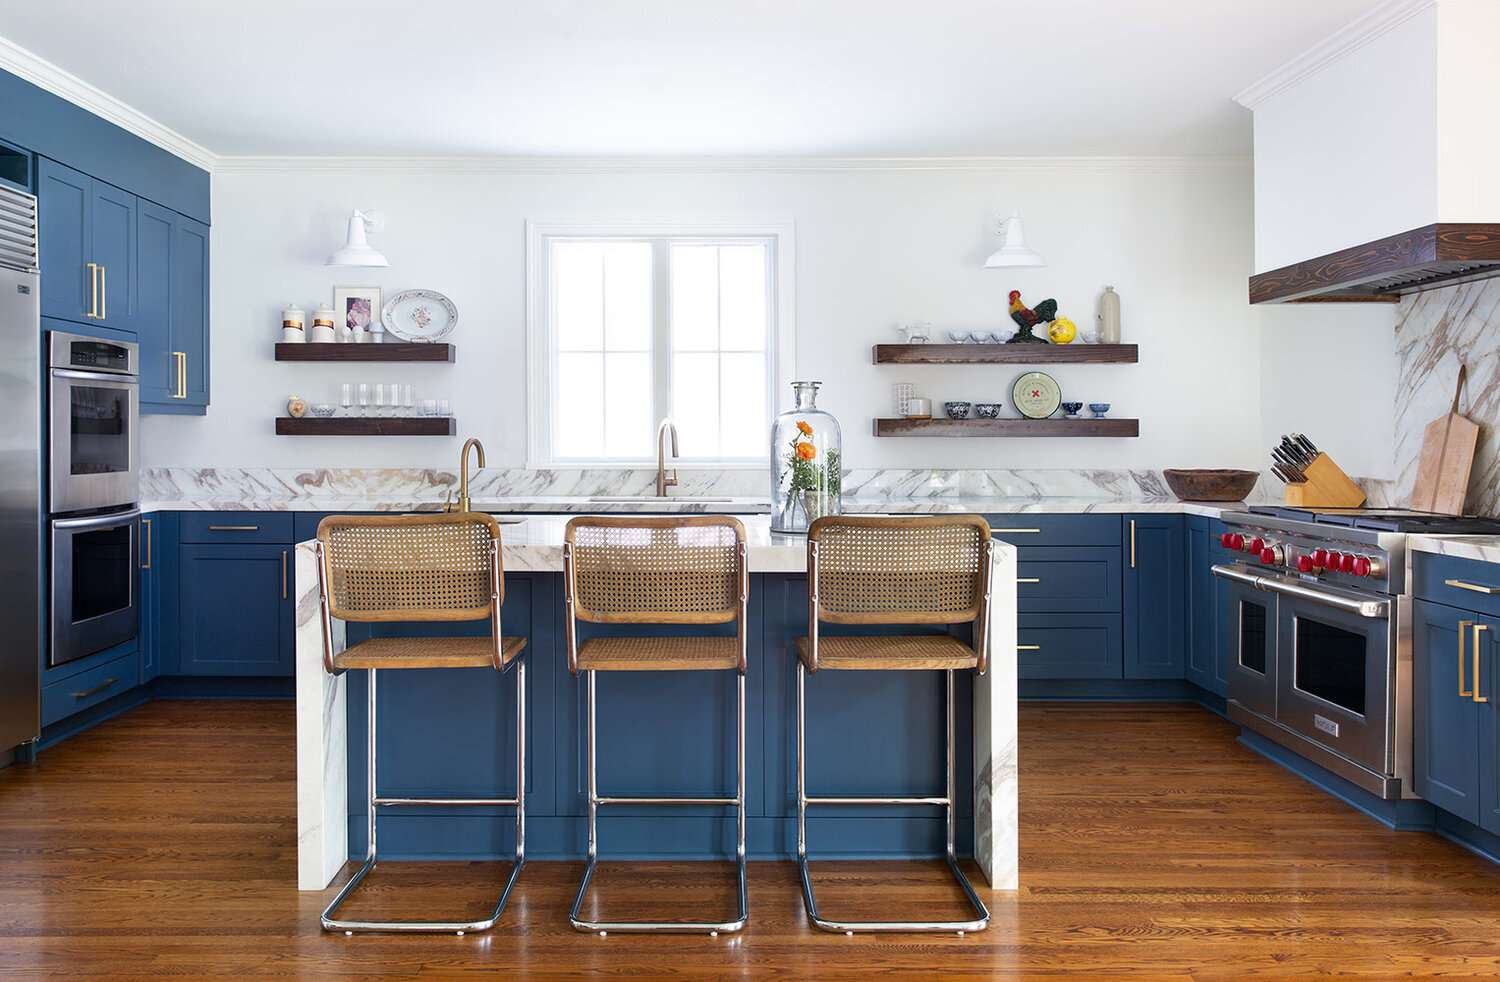 Playful blue and white kitchen with marble countertops.